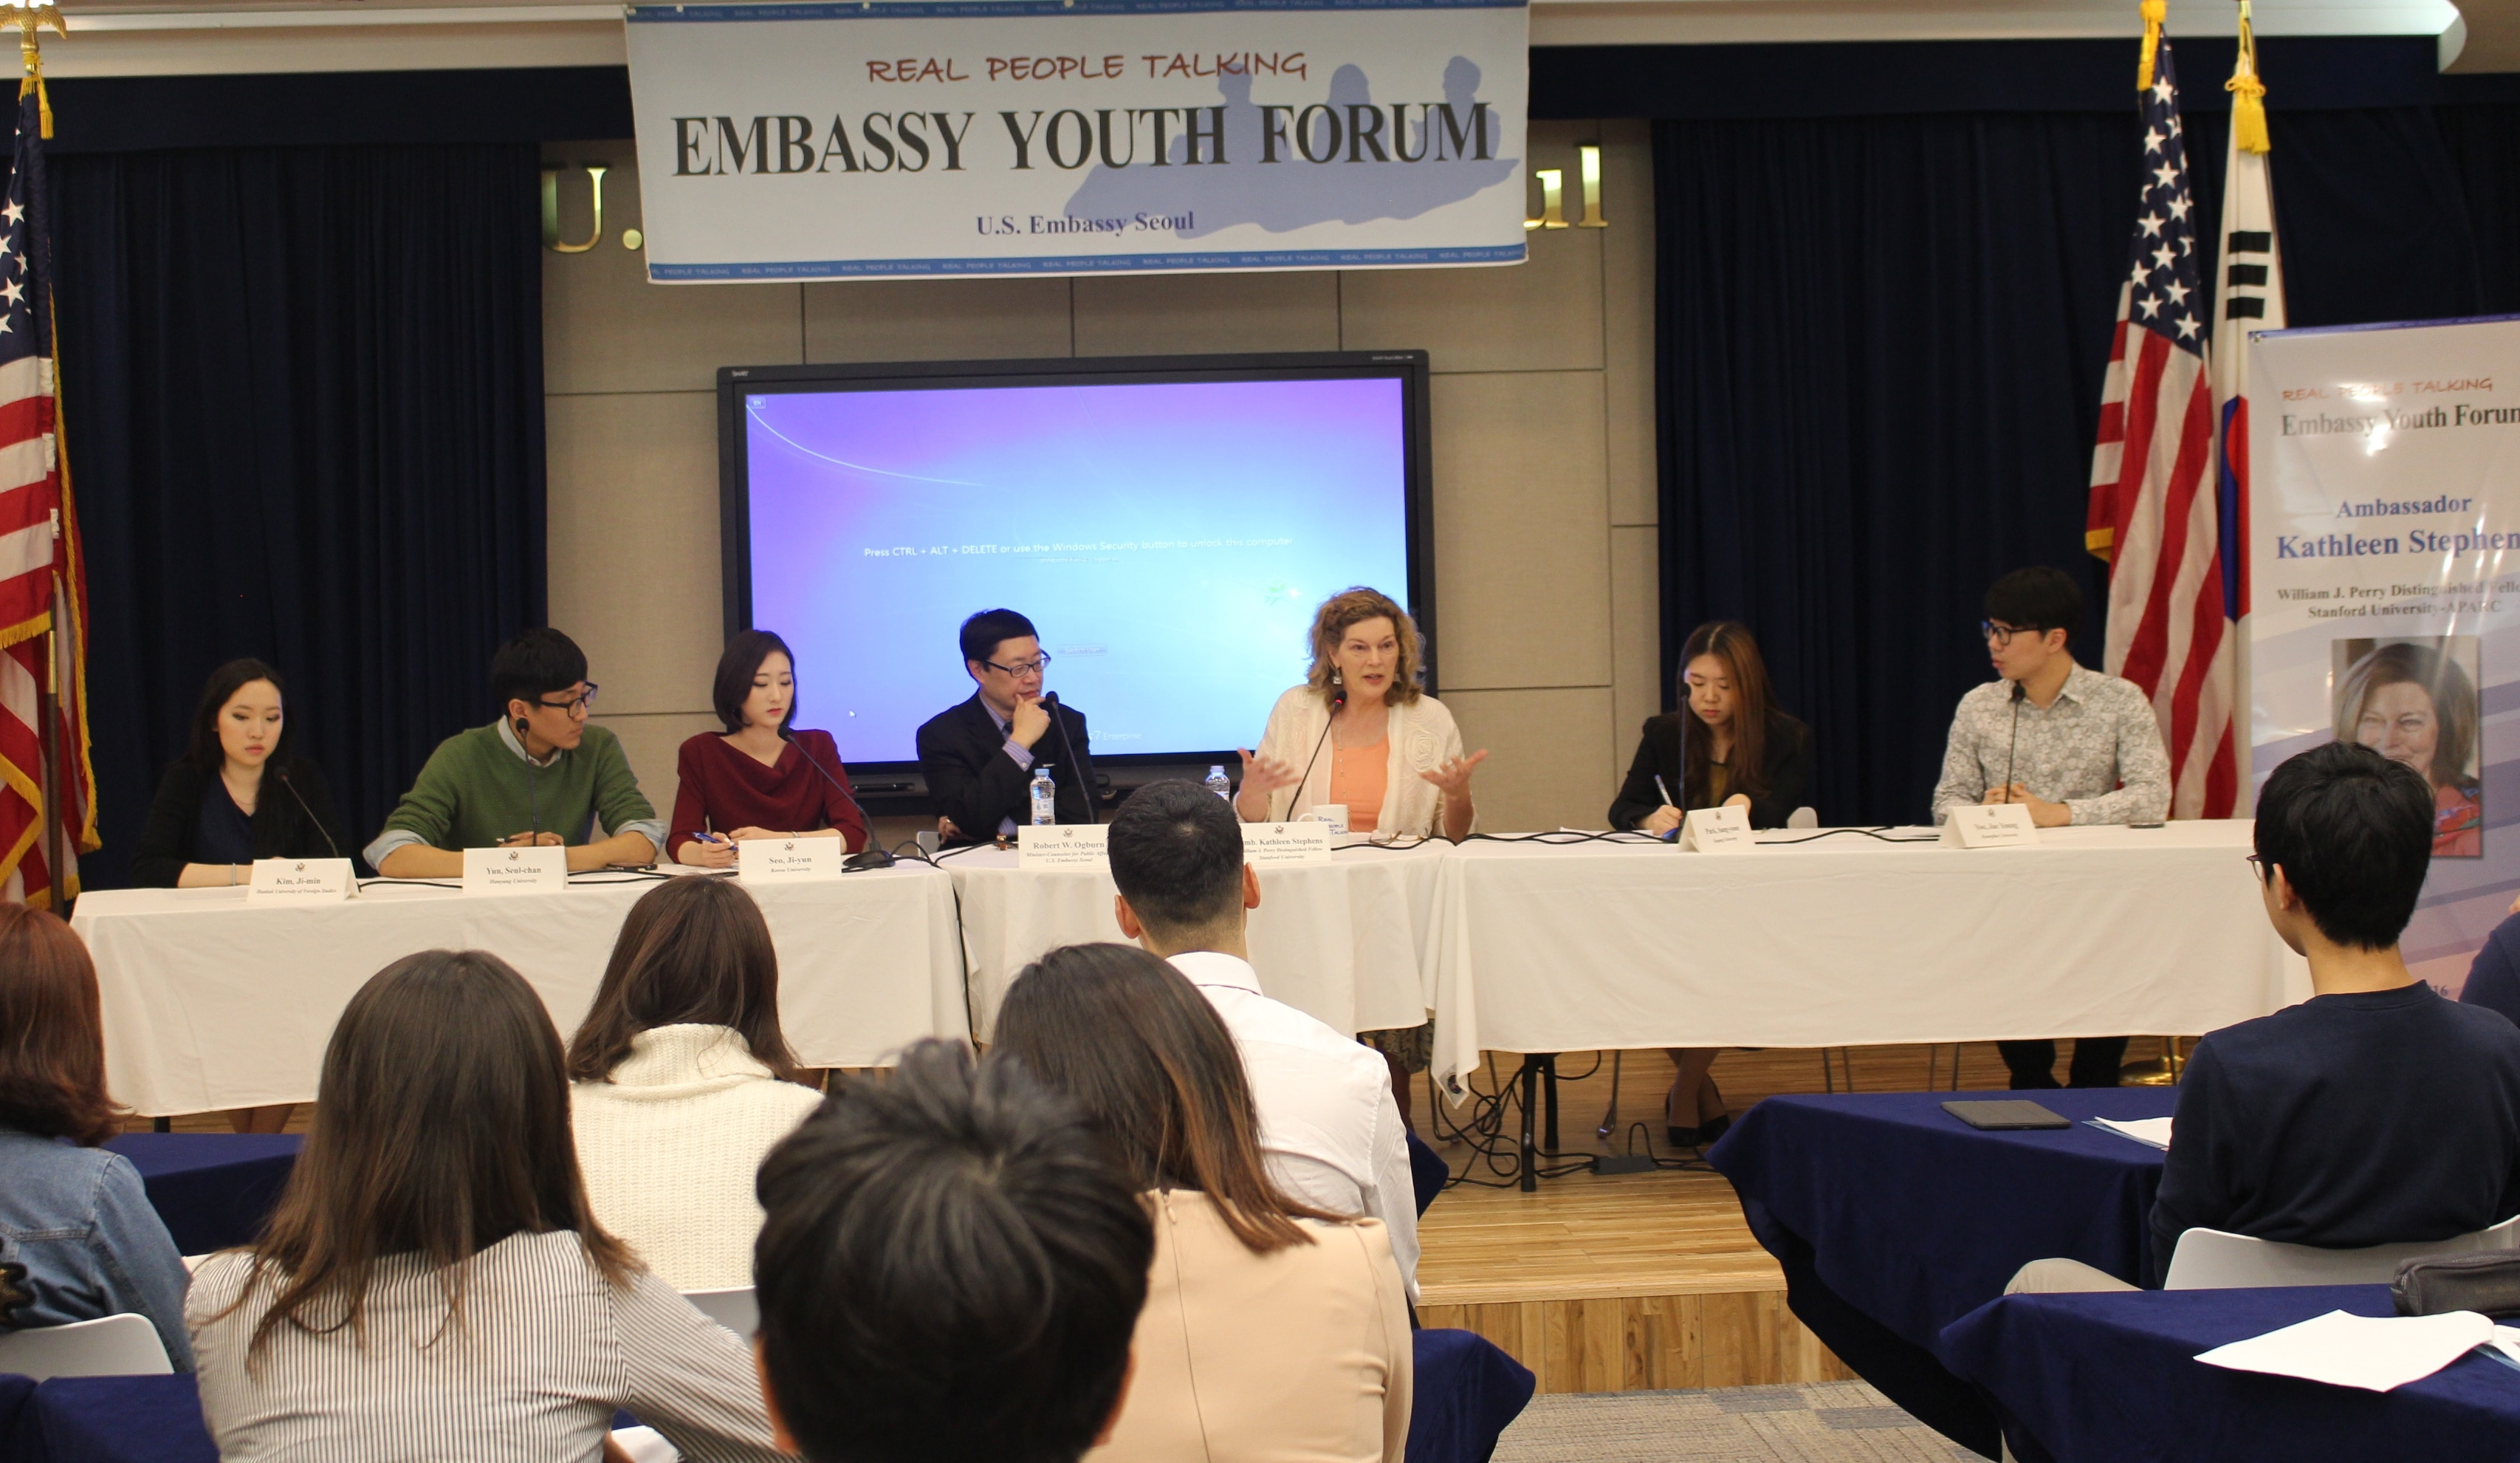 52nd Embassy Youth Forum - Real People Talking with Ambassador Kathleen Stephens